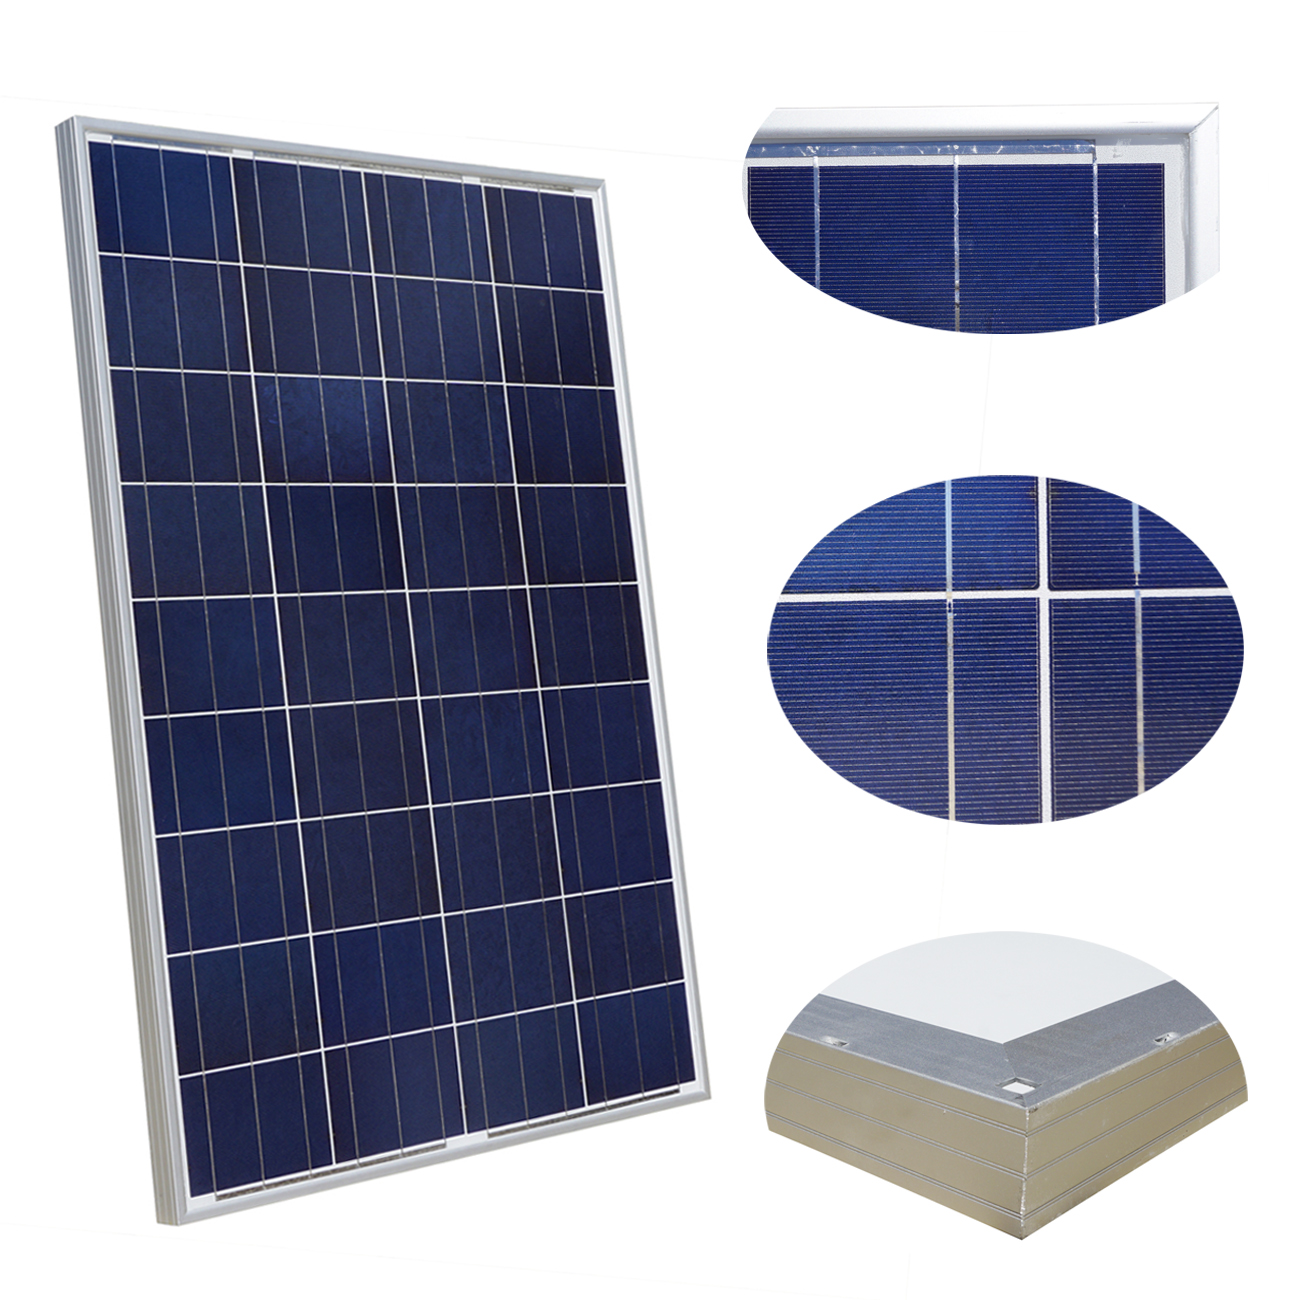 100W 18V Polycrystalline Solar Panel for 12v Battery Off Grid System Solar for Home System bose soundlink bluetooth speaker iii